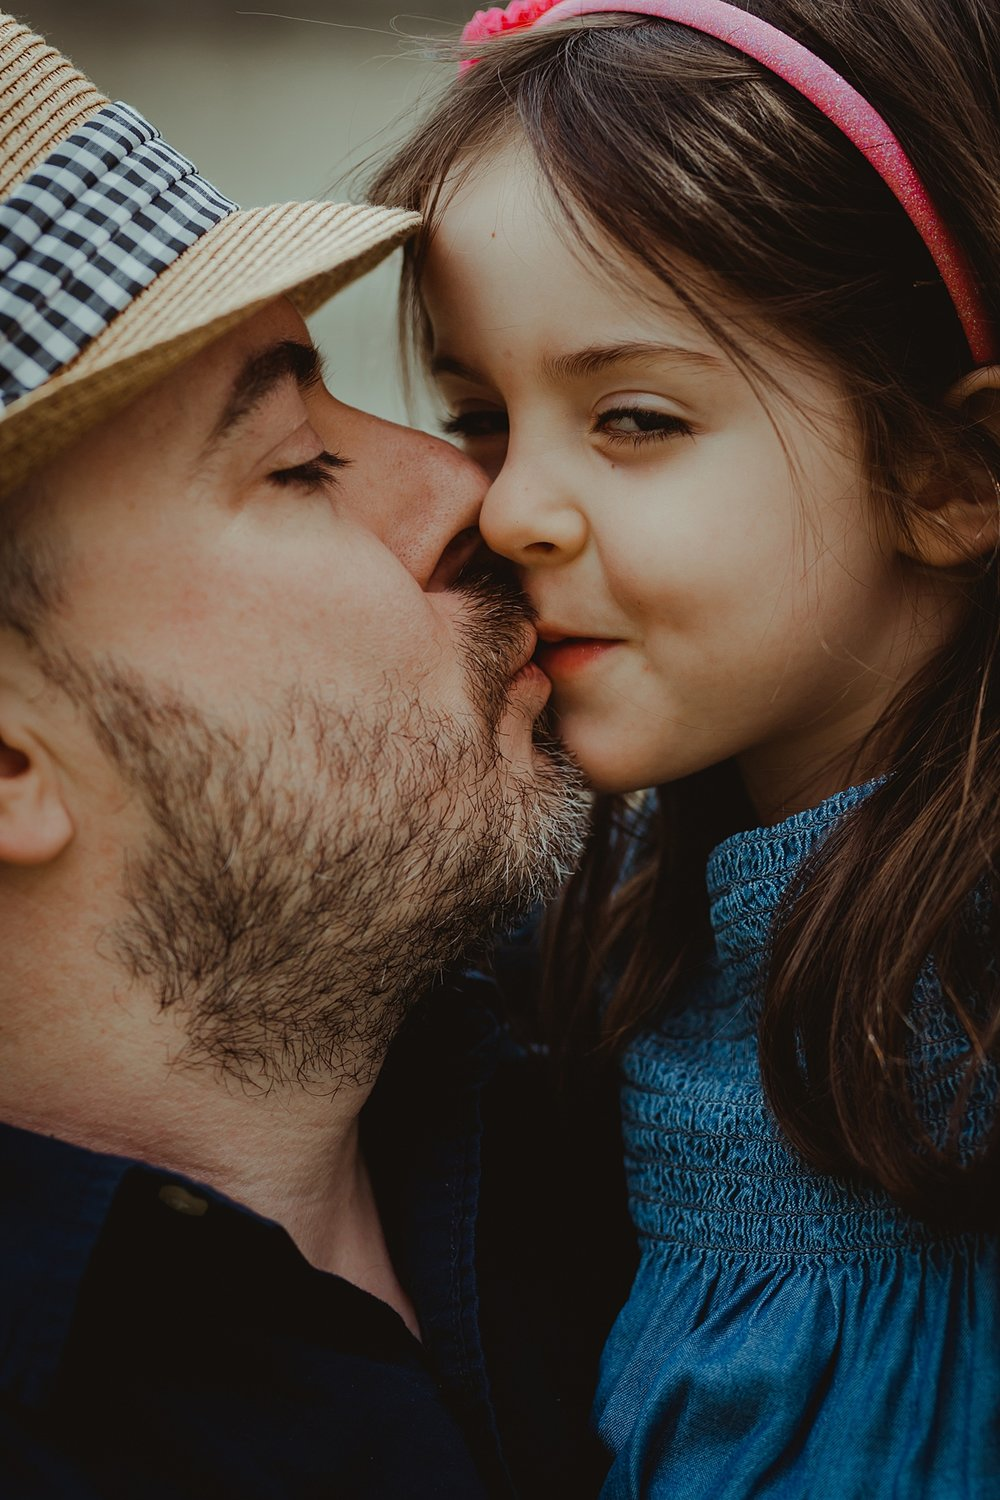 portrait of dad kissing daughter on the lips and daughter looking at camera with cheeky grin. photo by nyc family and newborn photographer krystil mcdowall